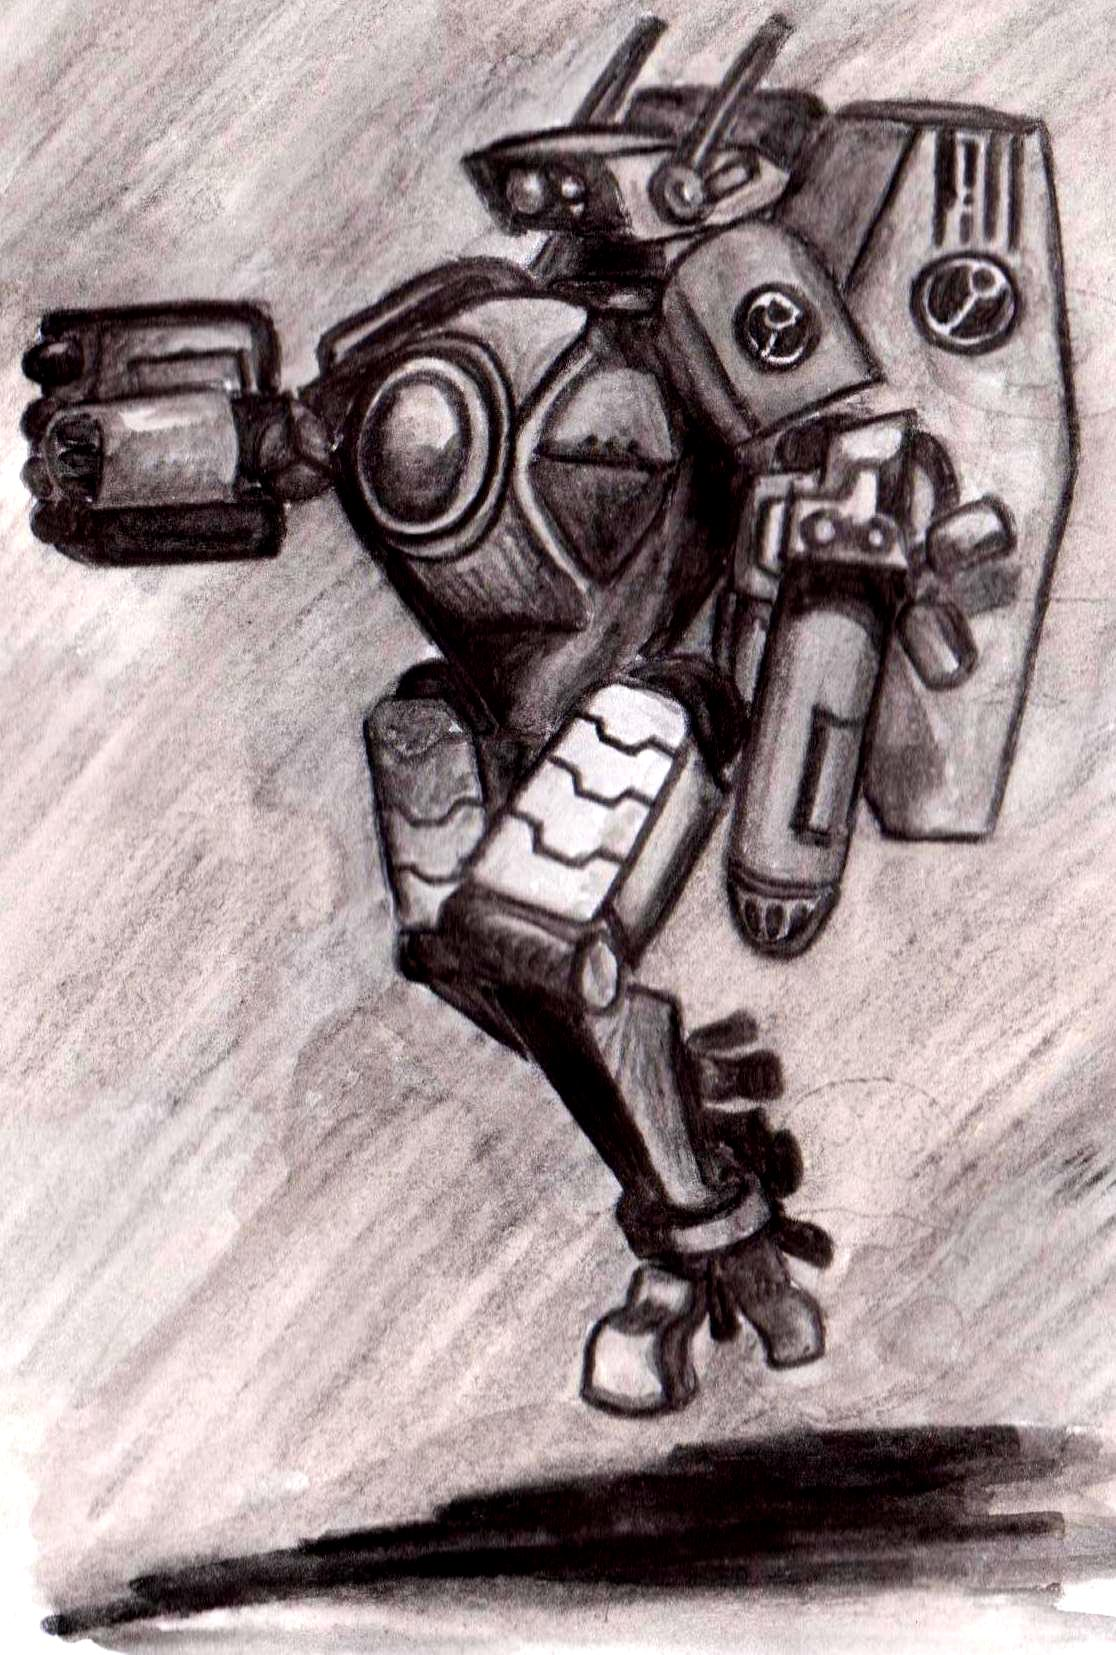 Artwork, Chaos Space Marines, Crisis Battlesuit, Cybot, Drawing, Dreadnought, Old, School, Scratch Build, Style, Tau, Work In Progress, XV8